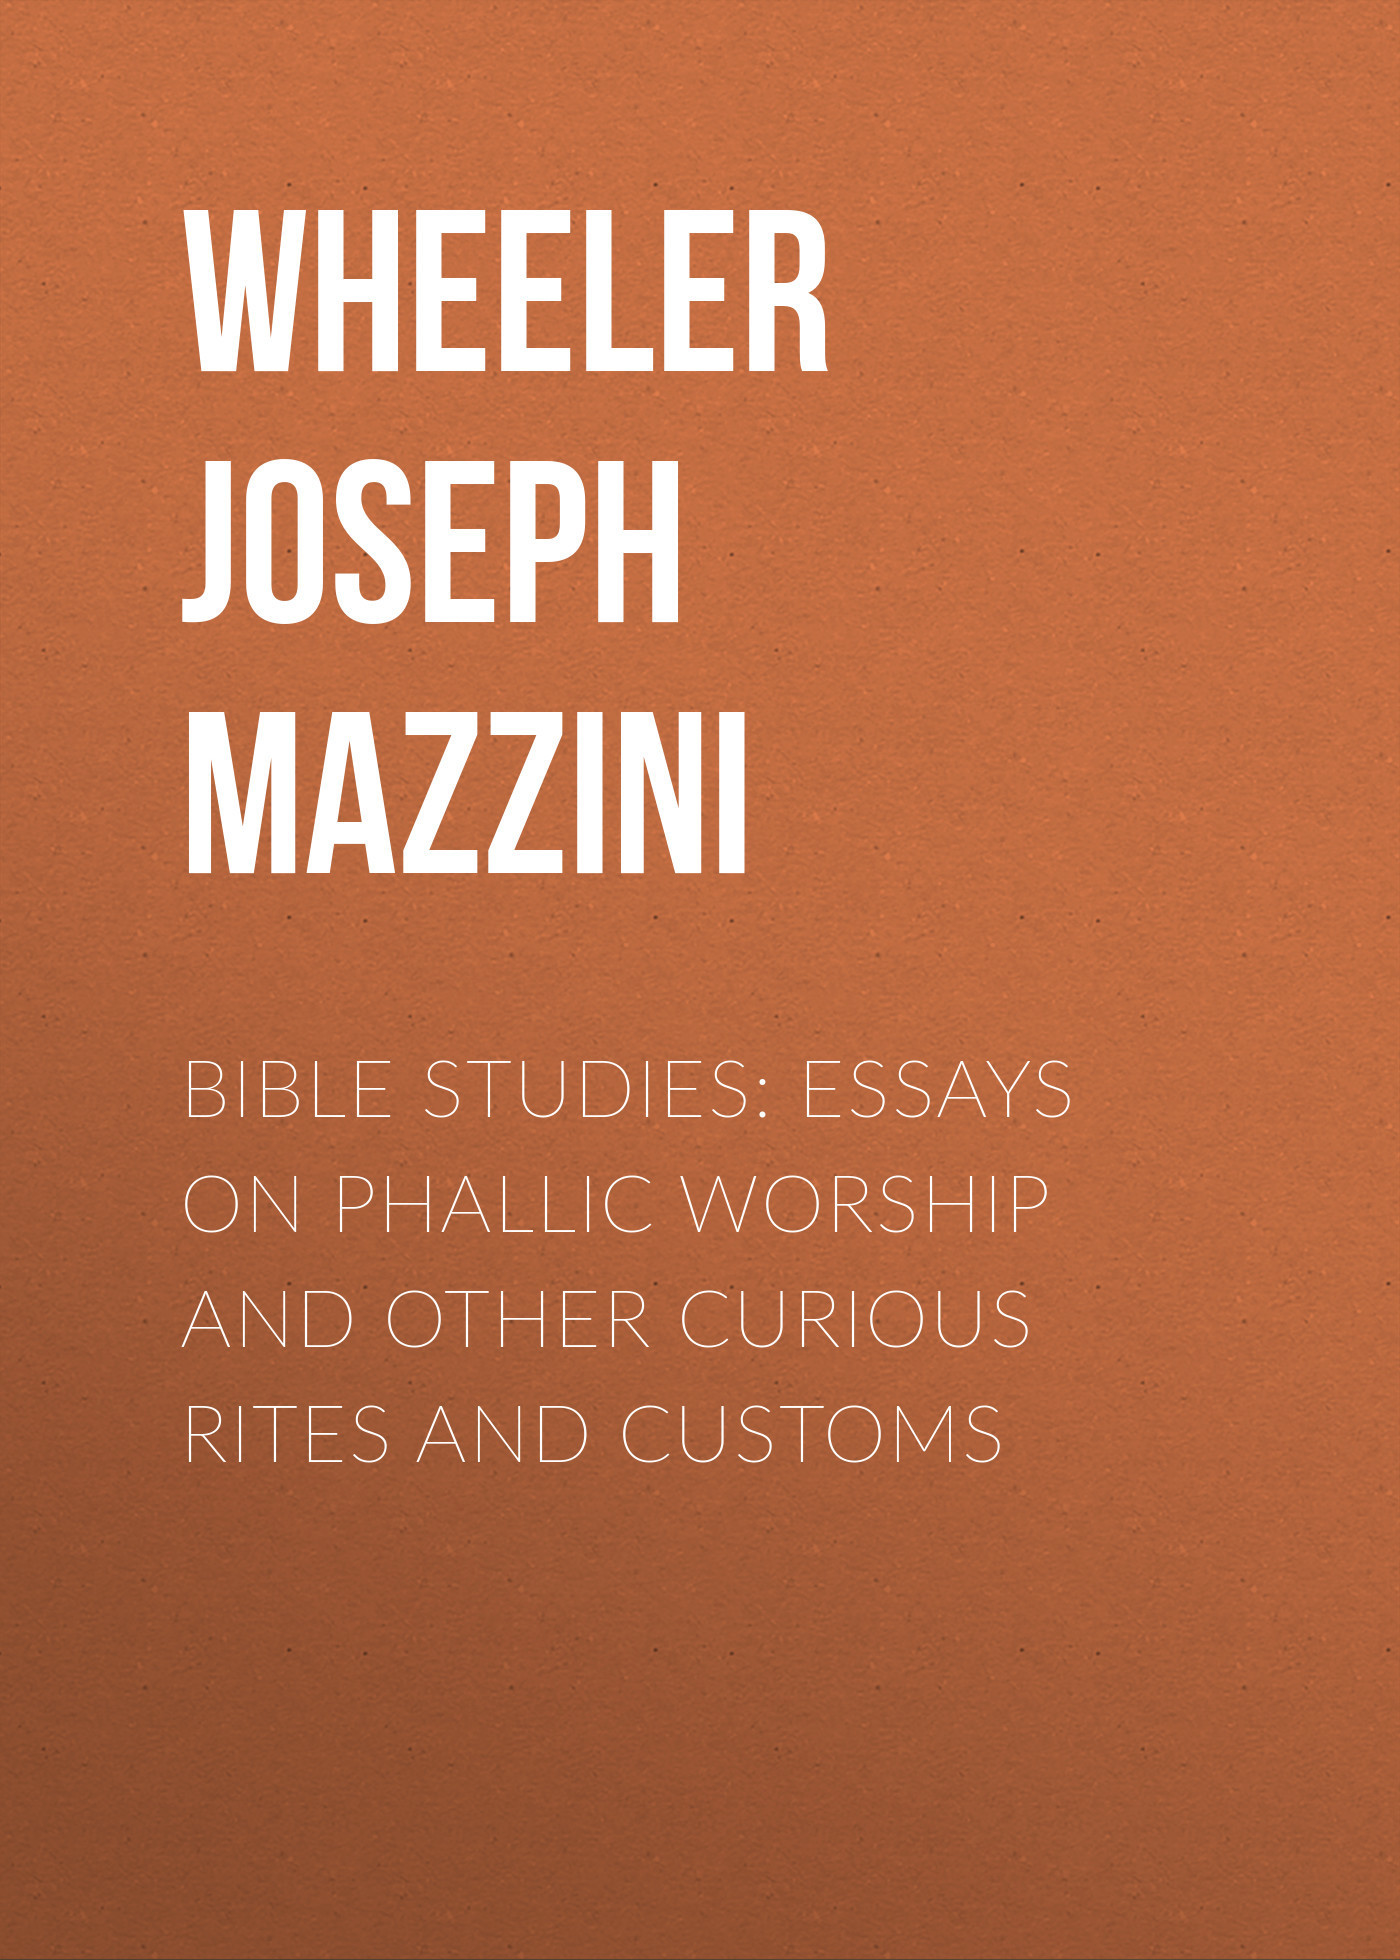 Wheeler Joseph Mazzini Bible Studies: Essays on Phallic Worship and Other Curious Rites and Customs rites still vip22